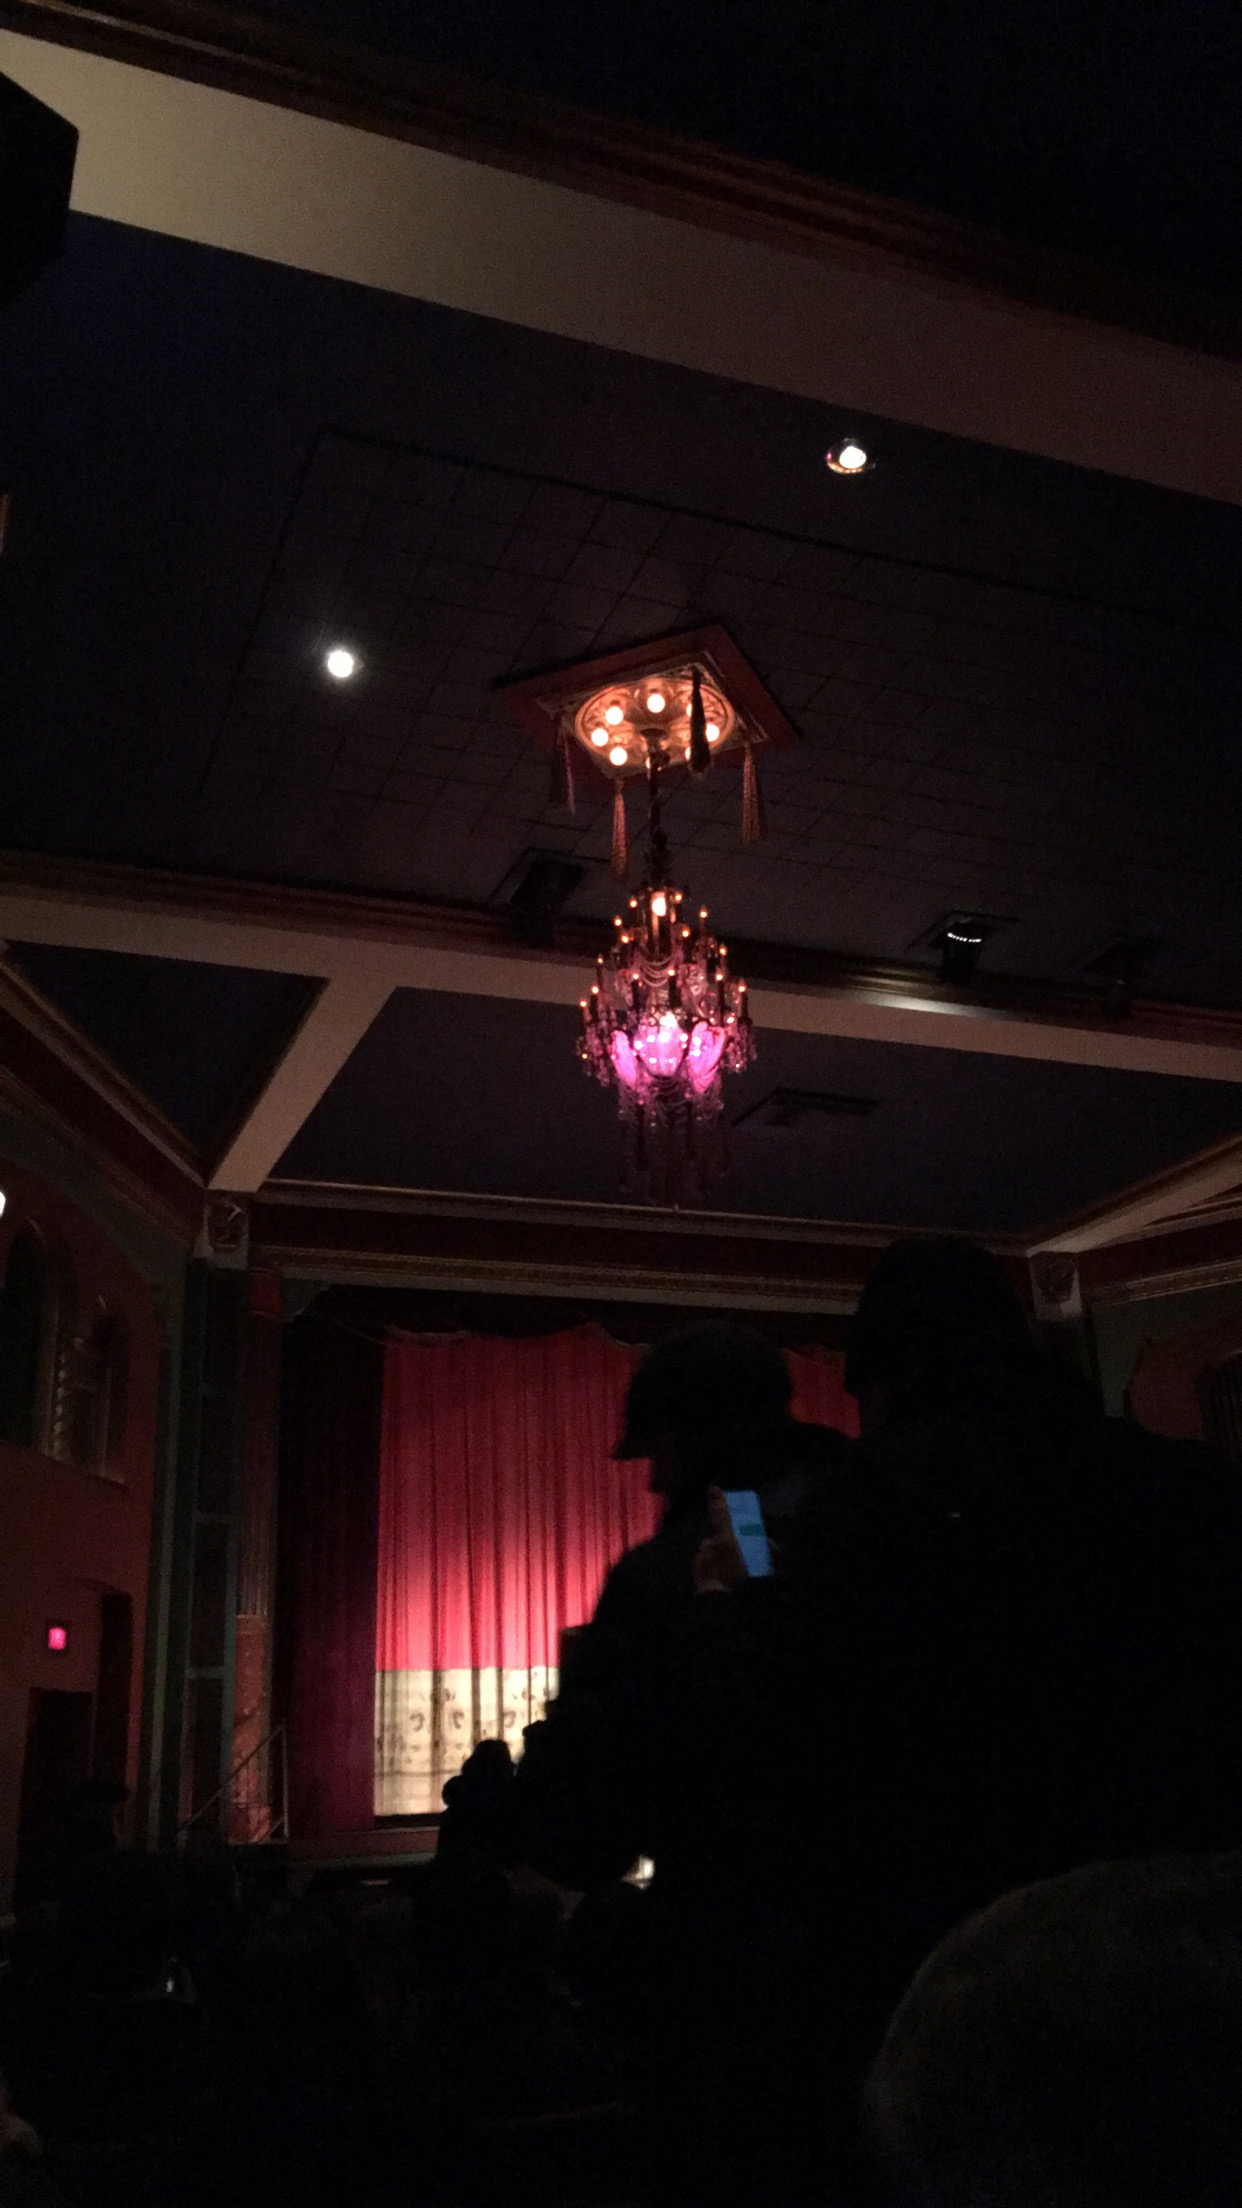 The historical detail of the Heights Theater, my favorite being the chandaliers